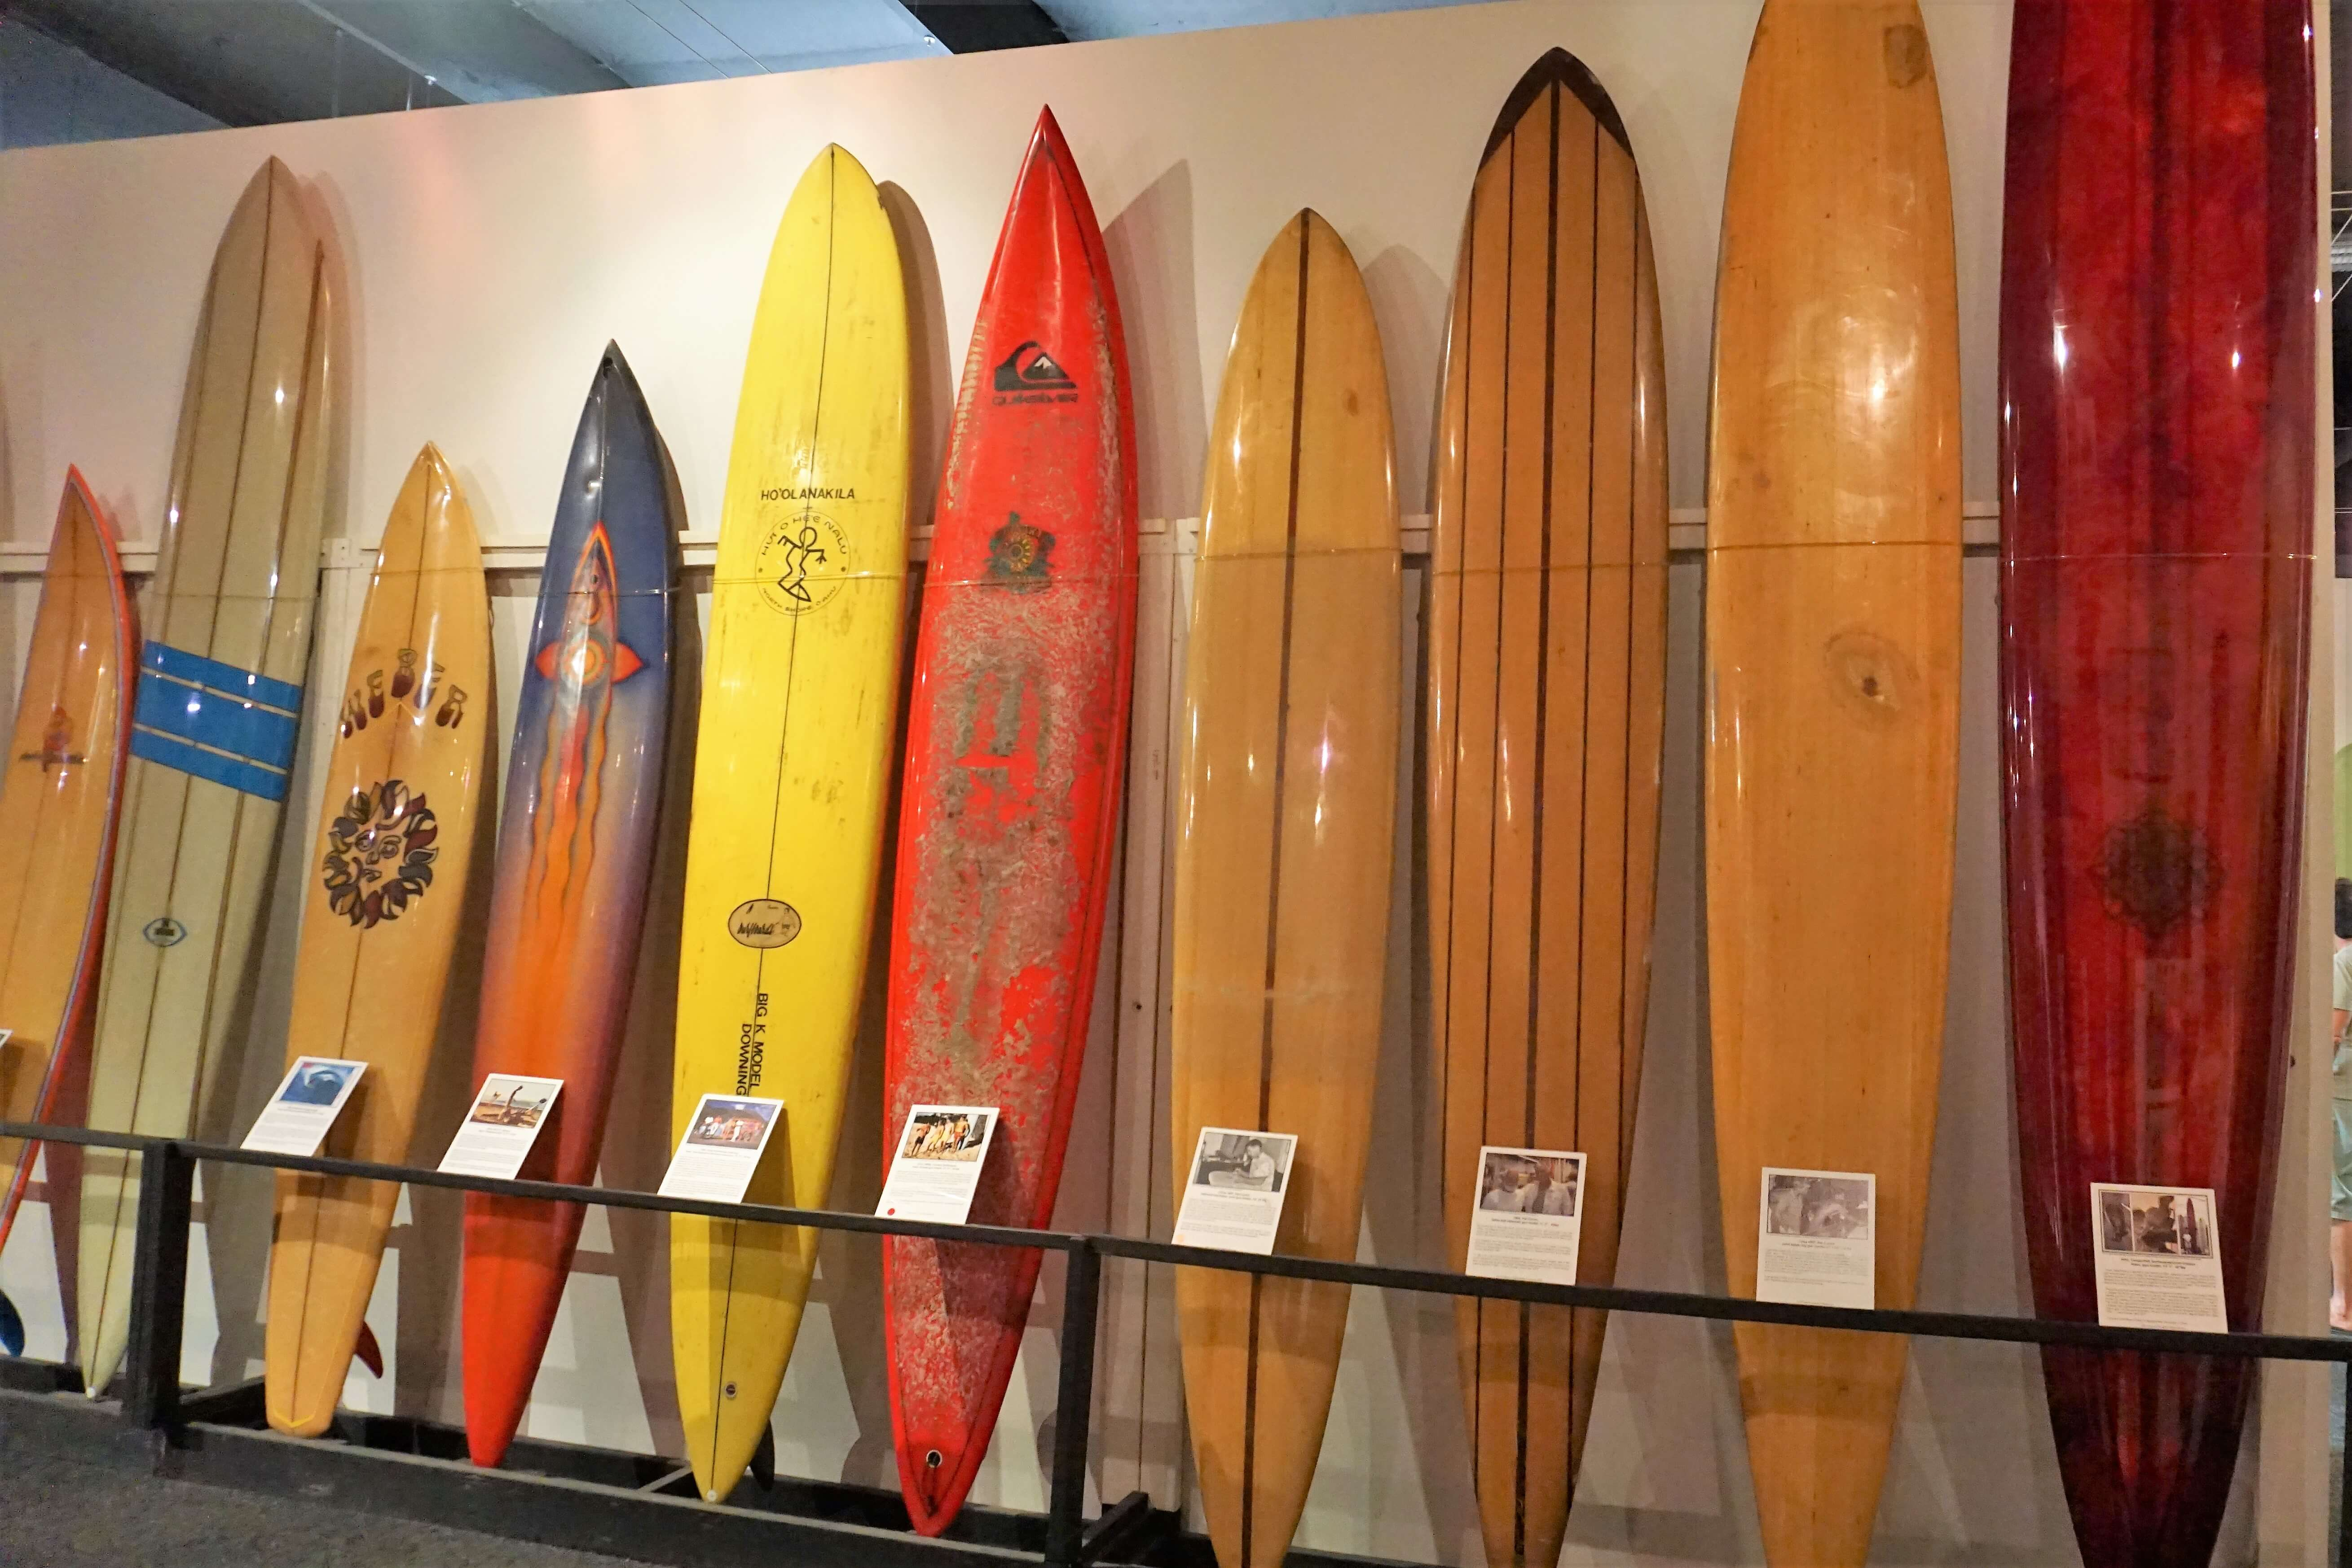 A collection of surfboards at the Surfing Heritage and Culture Center